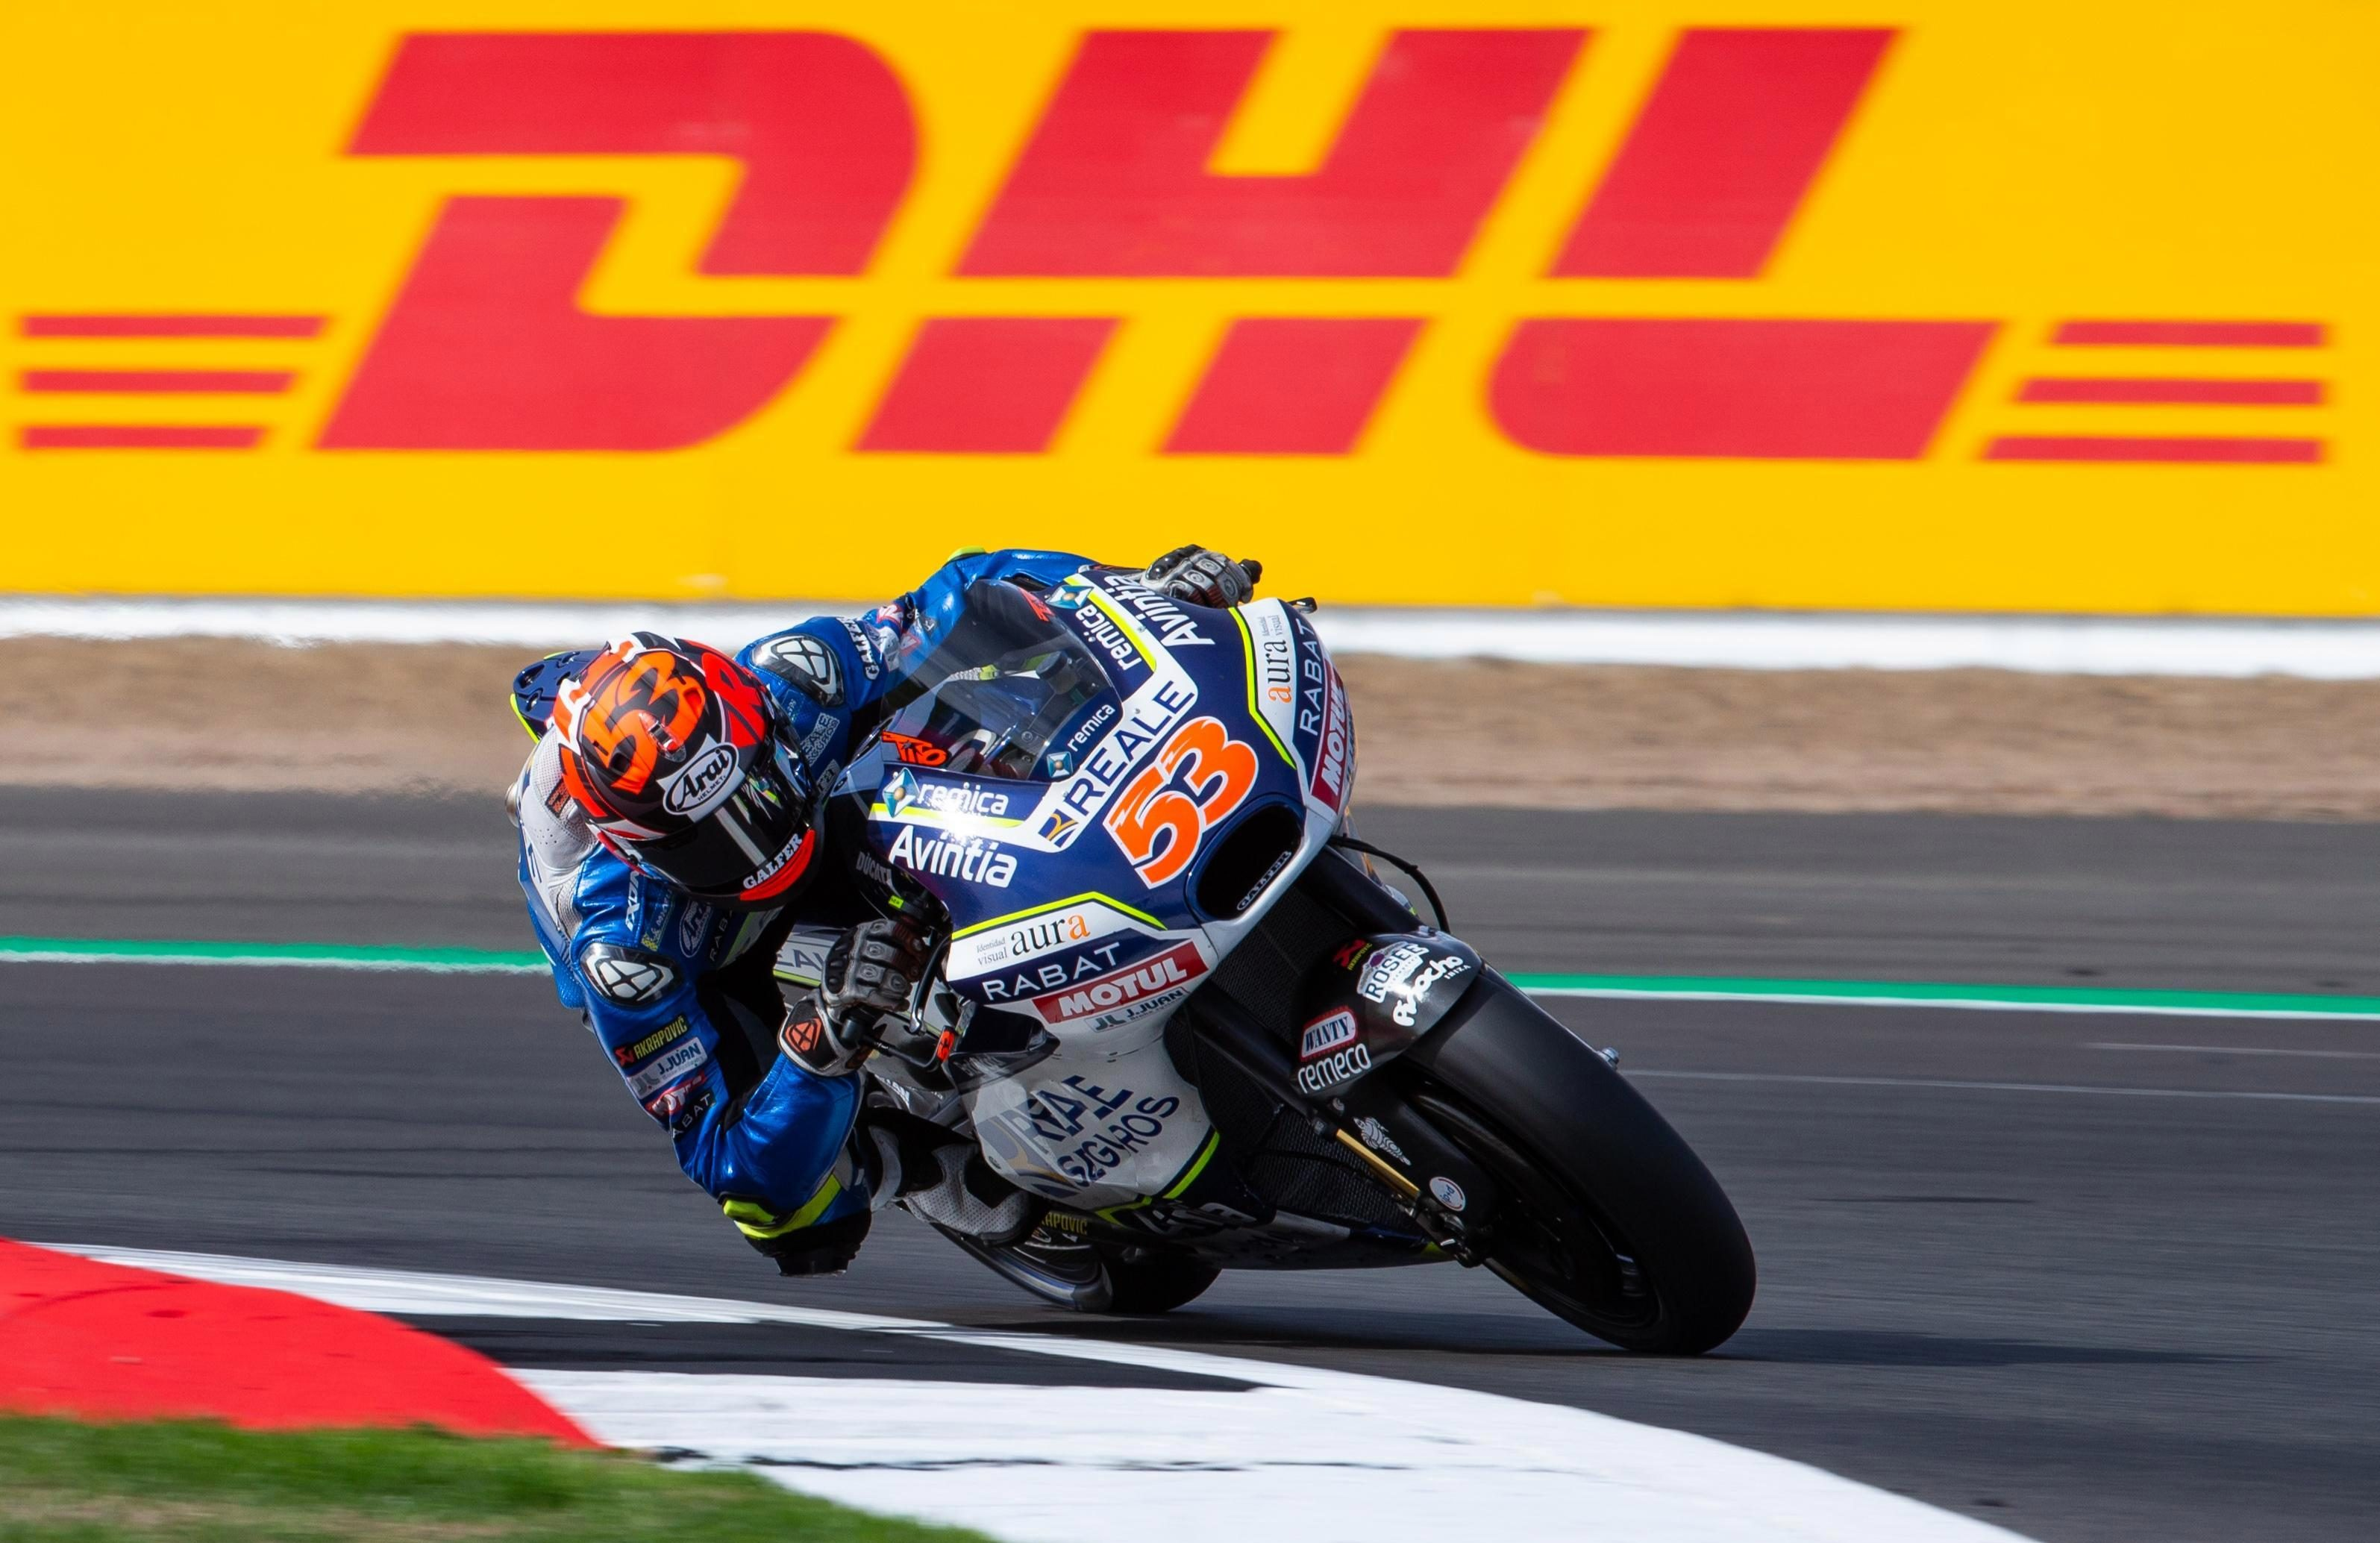 Rabat was hit by another bike and suffered a broken leg